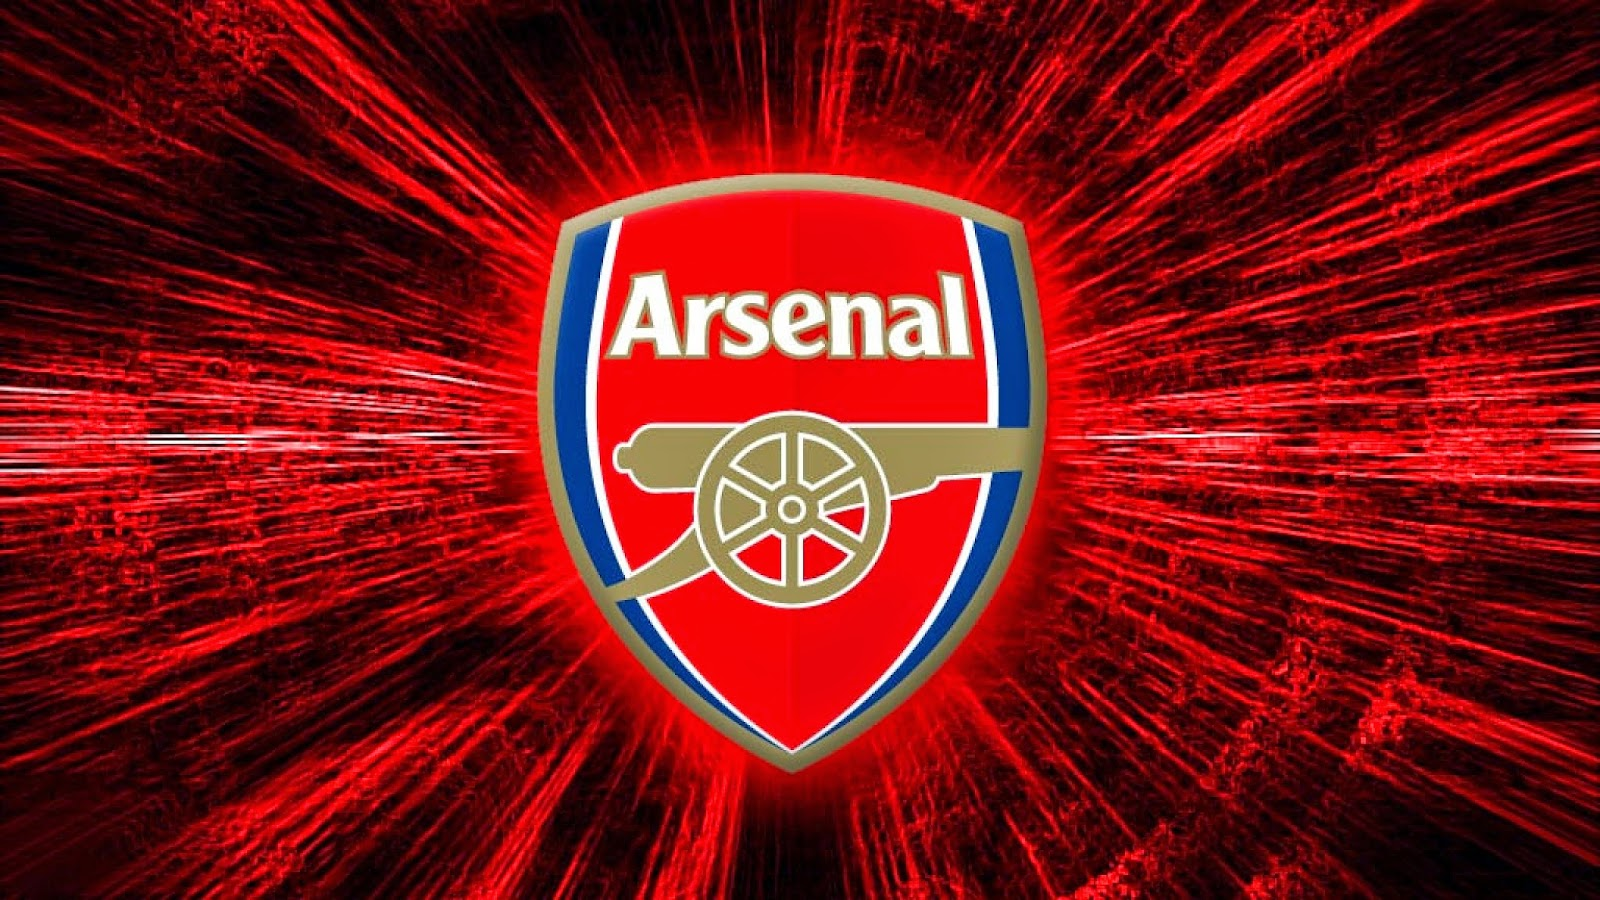 Pin wallpaper cartoon arsenal 1920x1080 football pictures for Arsenal mural wallpaper